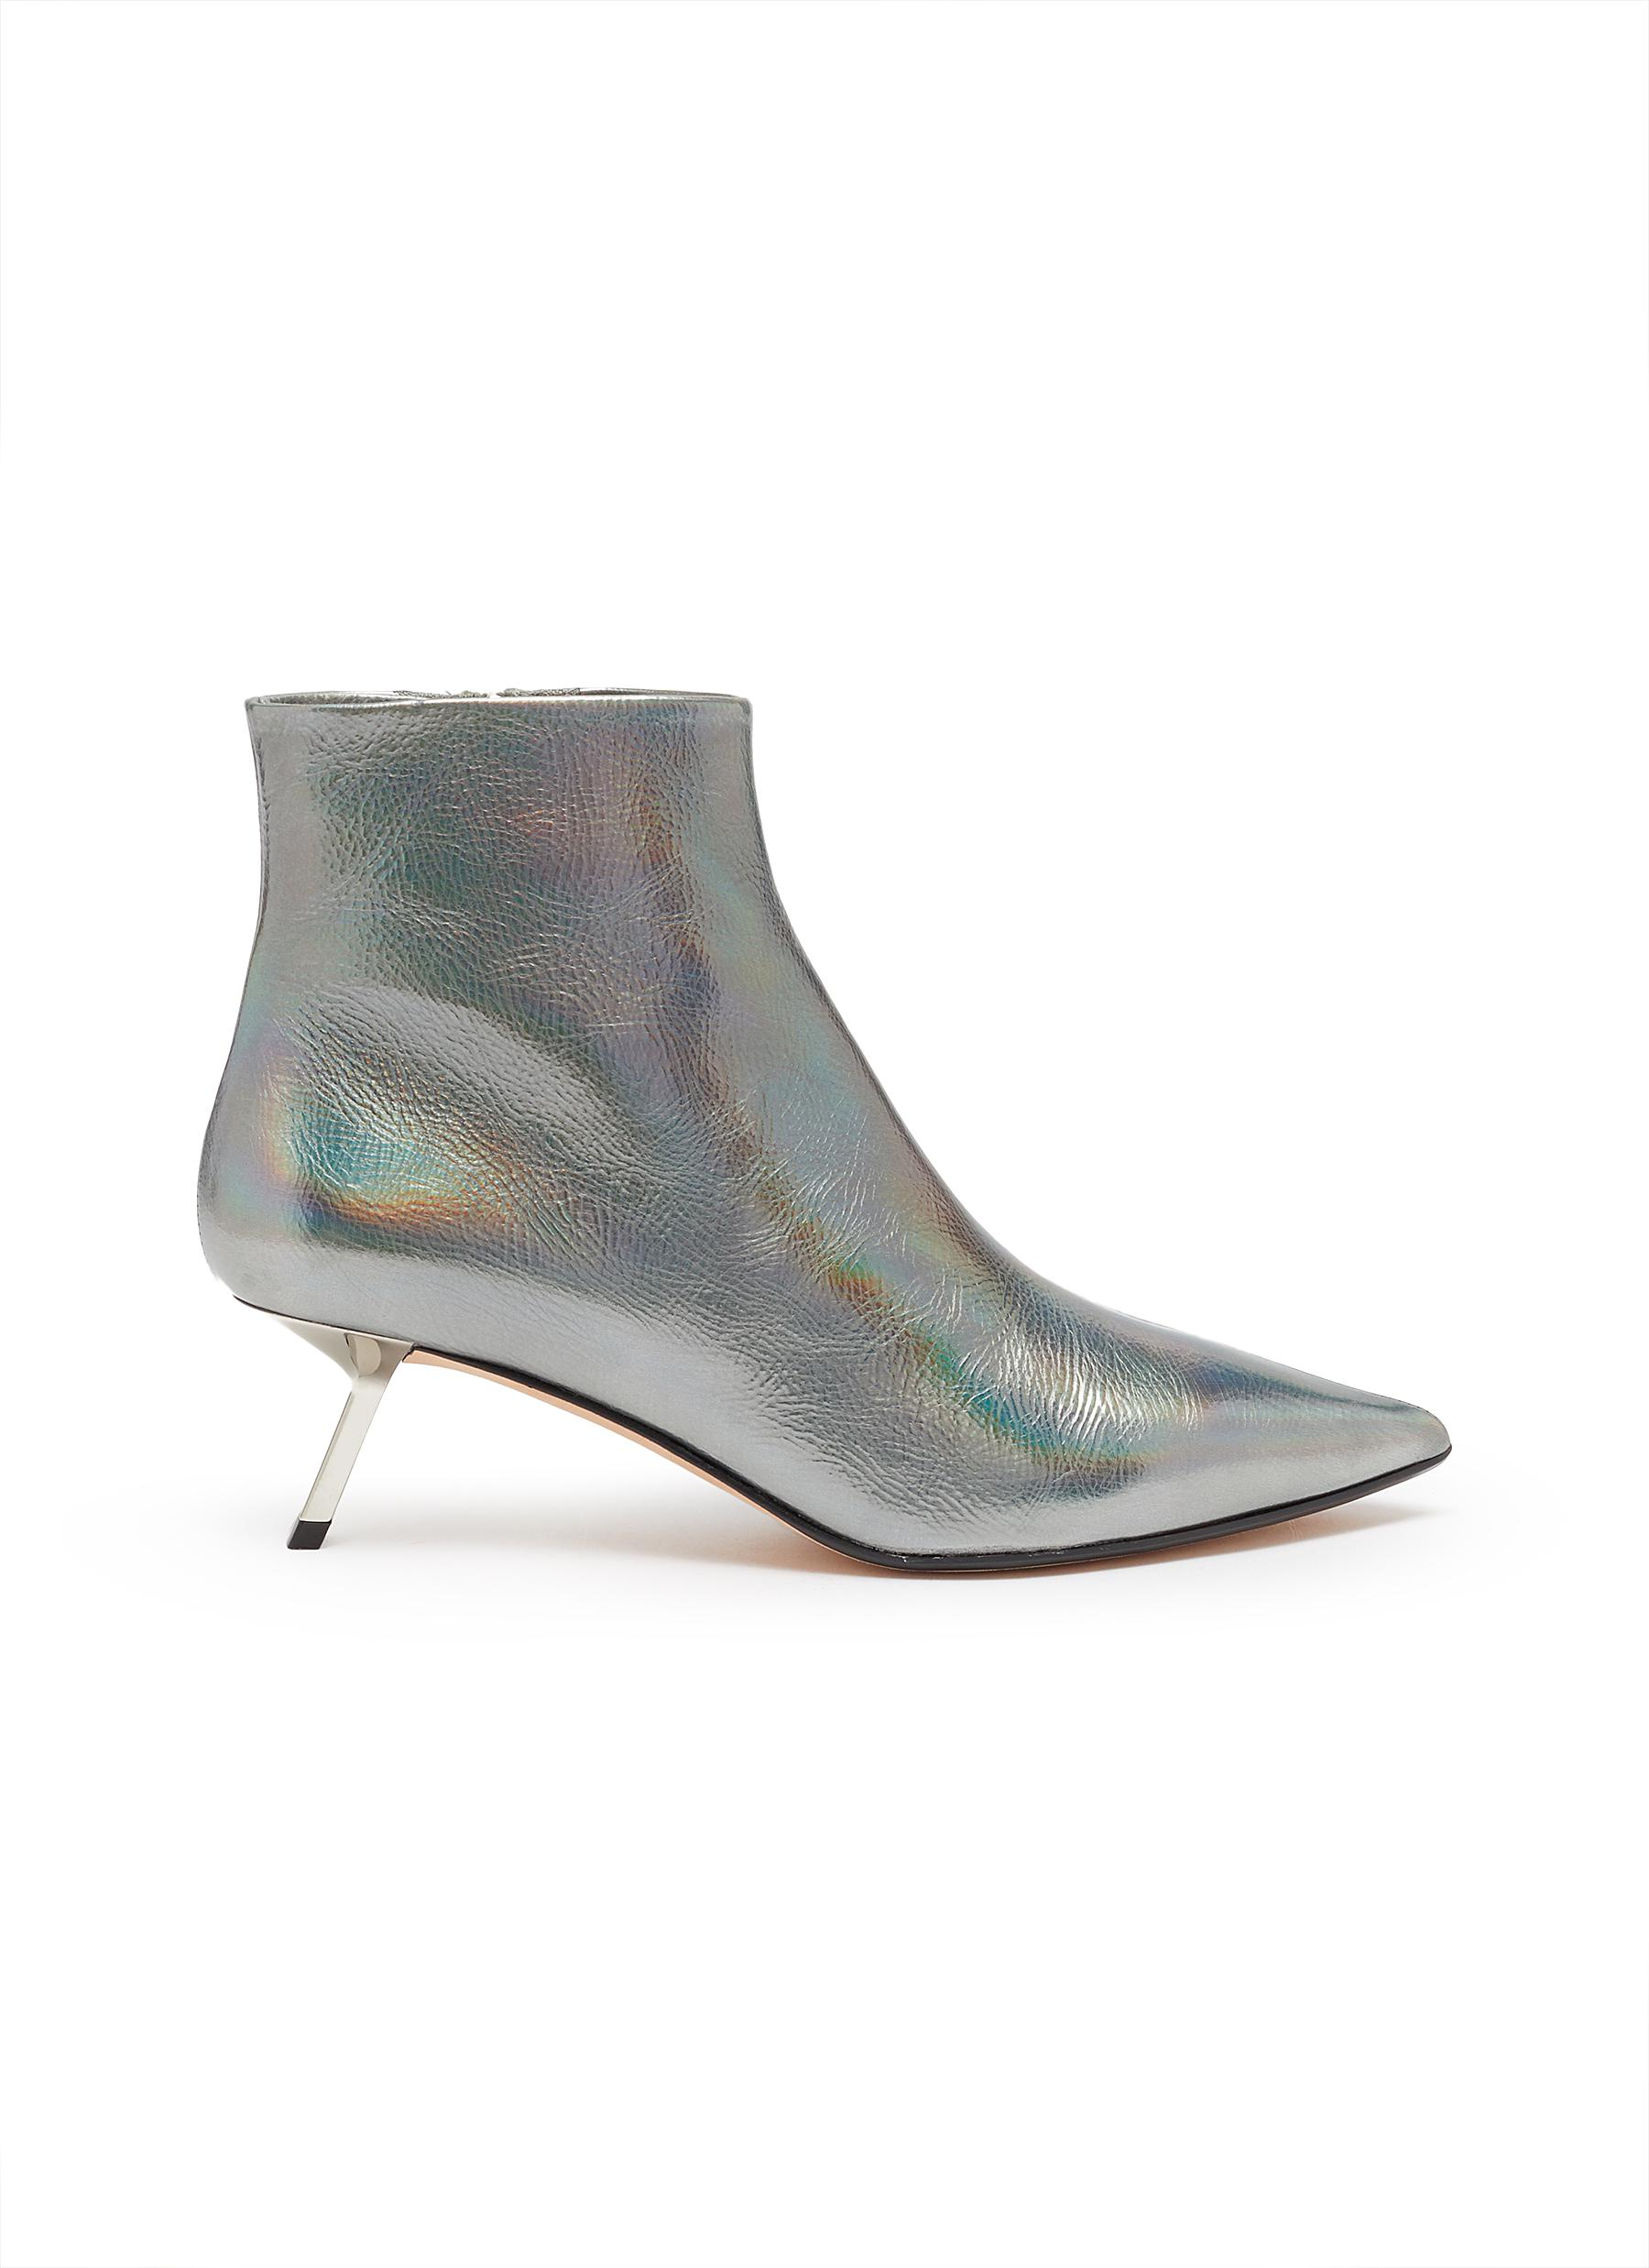 Quake holographic leather ankle boots by Alchimia Di Ballin